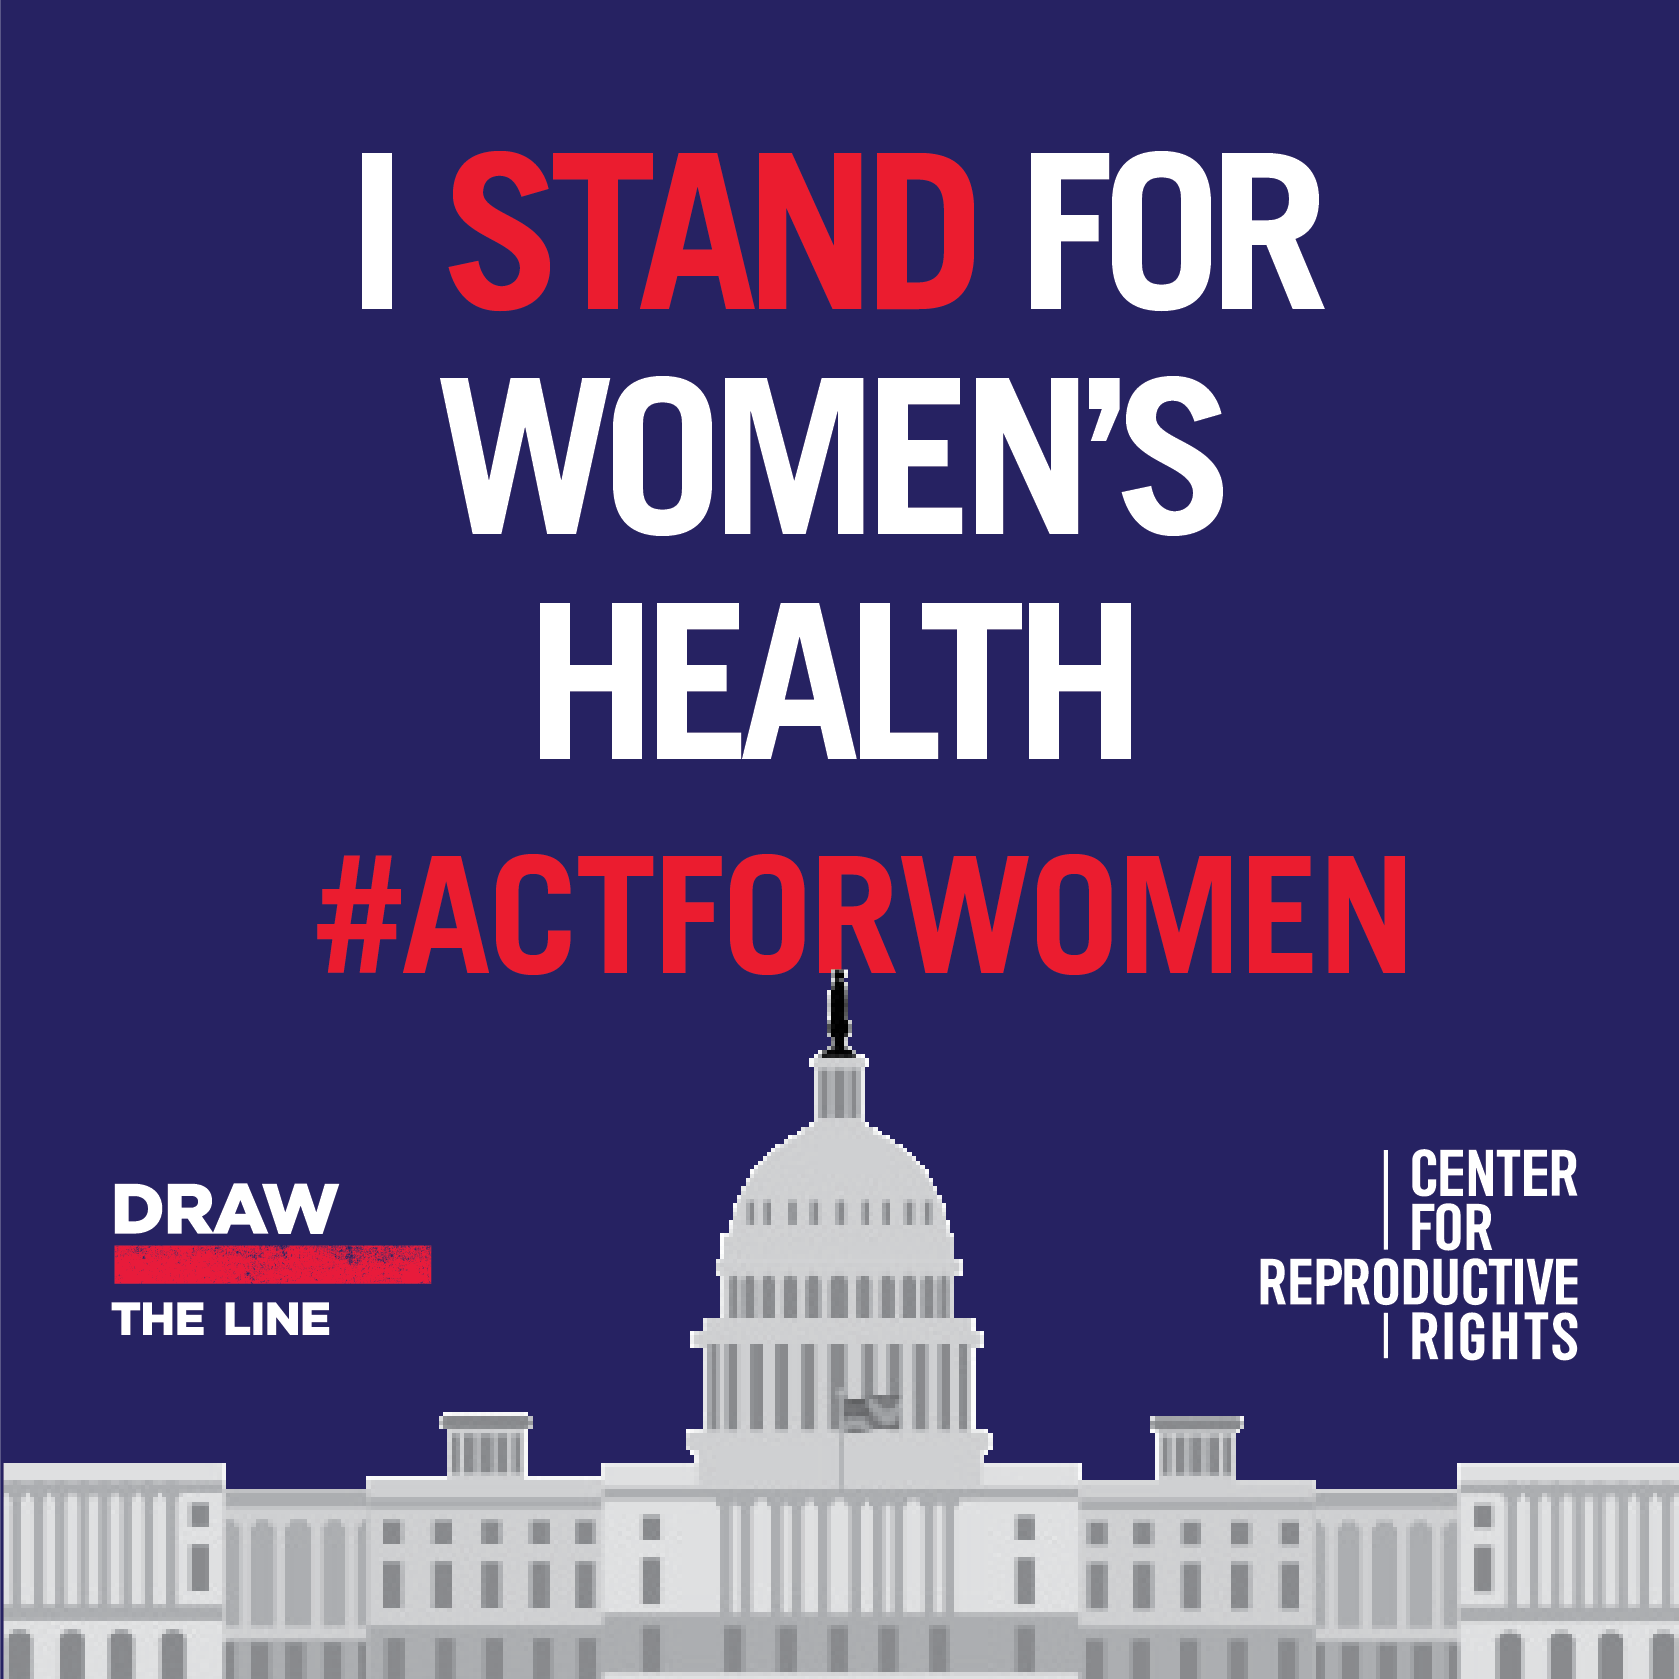 I Stand for women's health. #ActForWomen